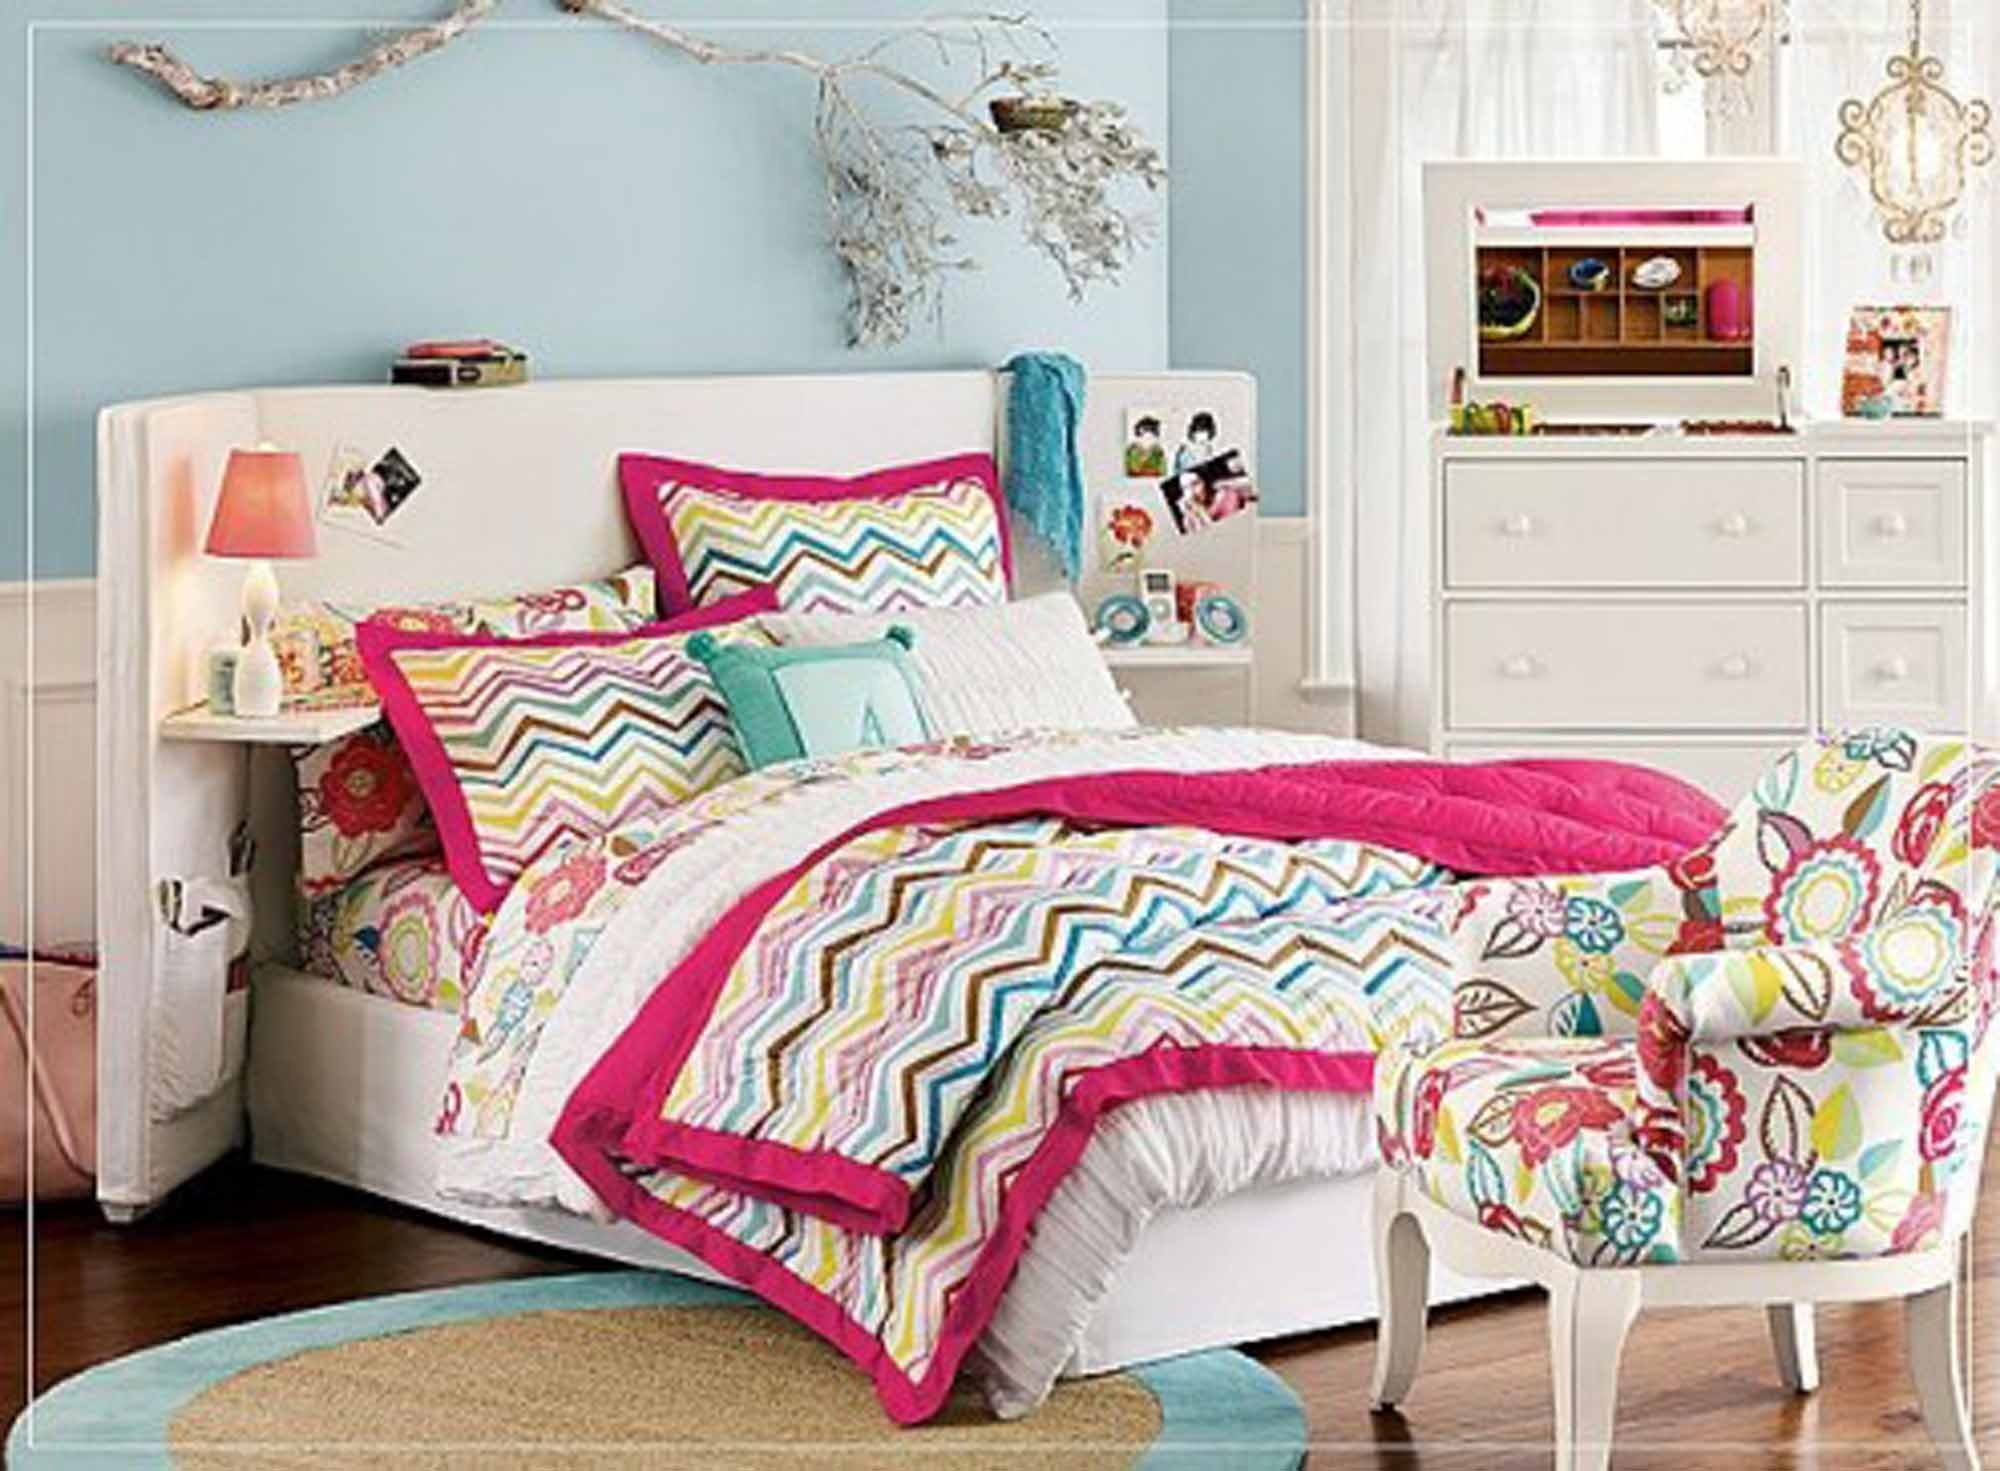 Best Teenage Bedroom Ideas For Remodeling The Bedroom Kvriver Com With Pictures